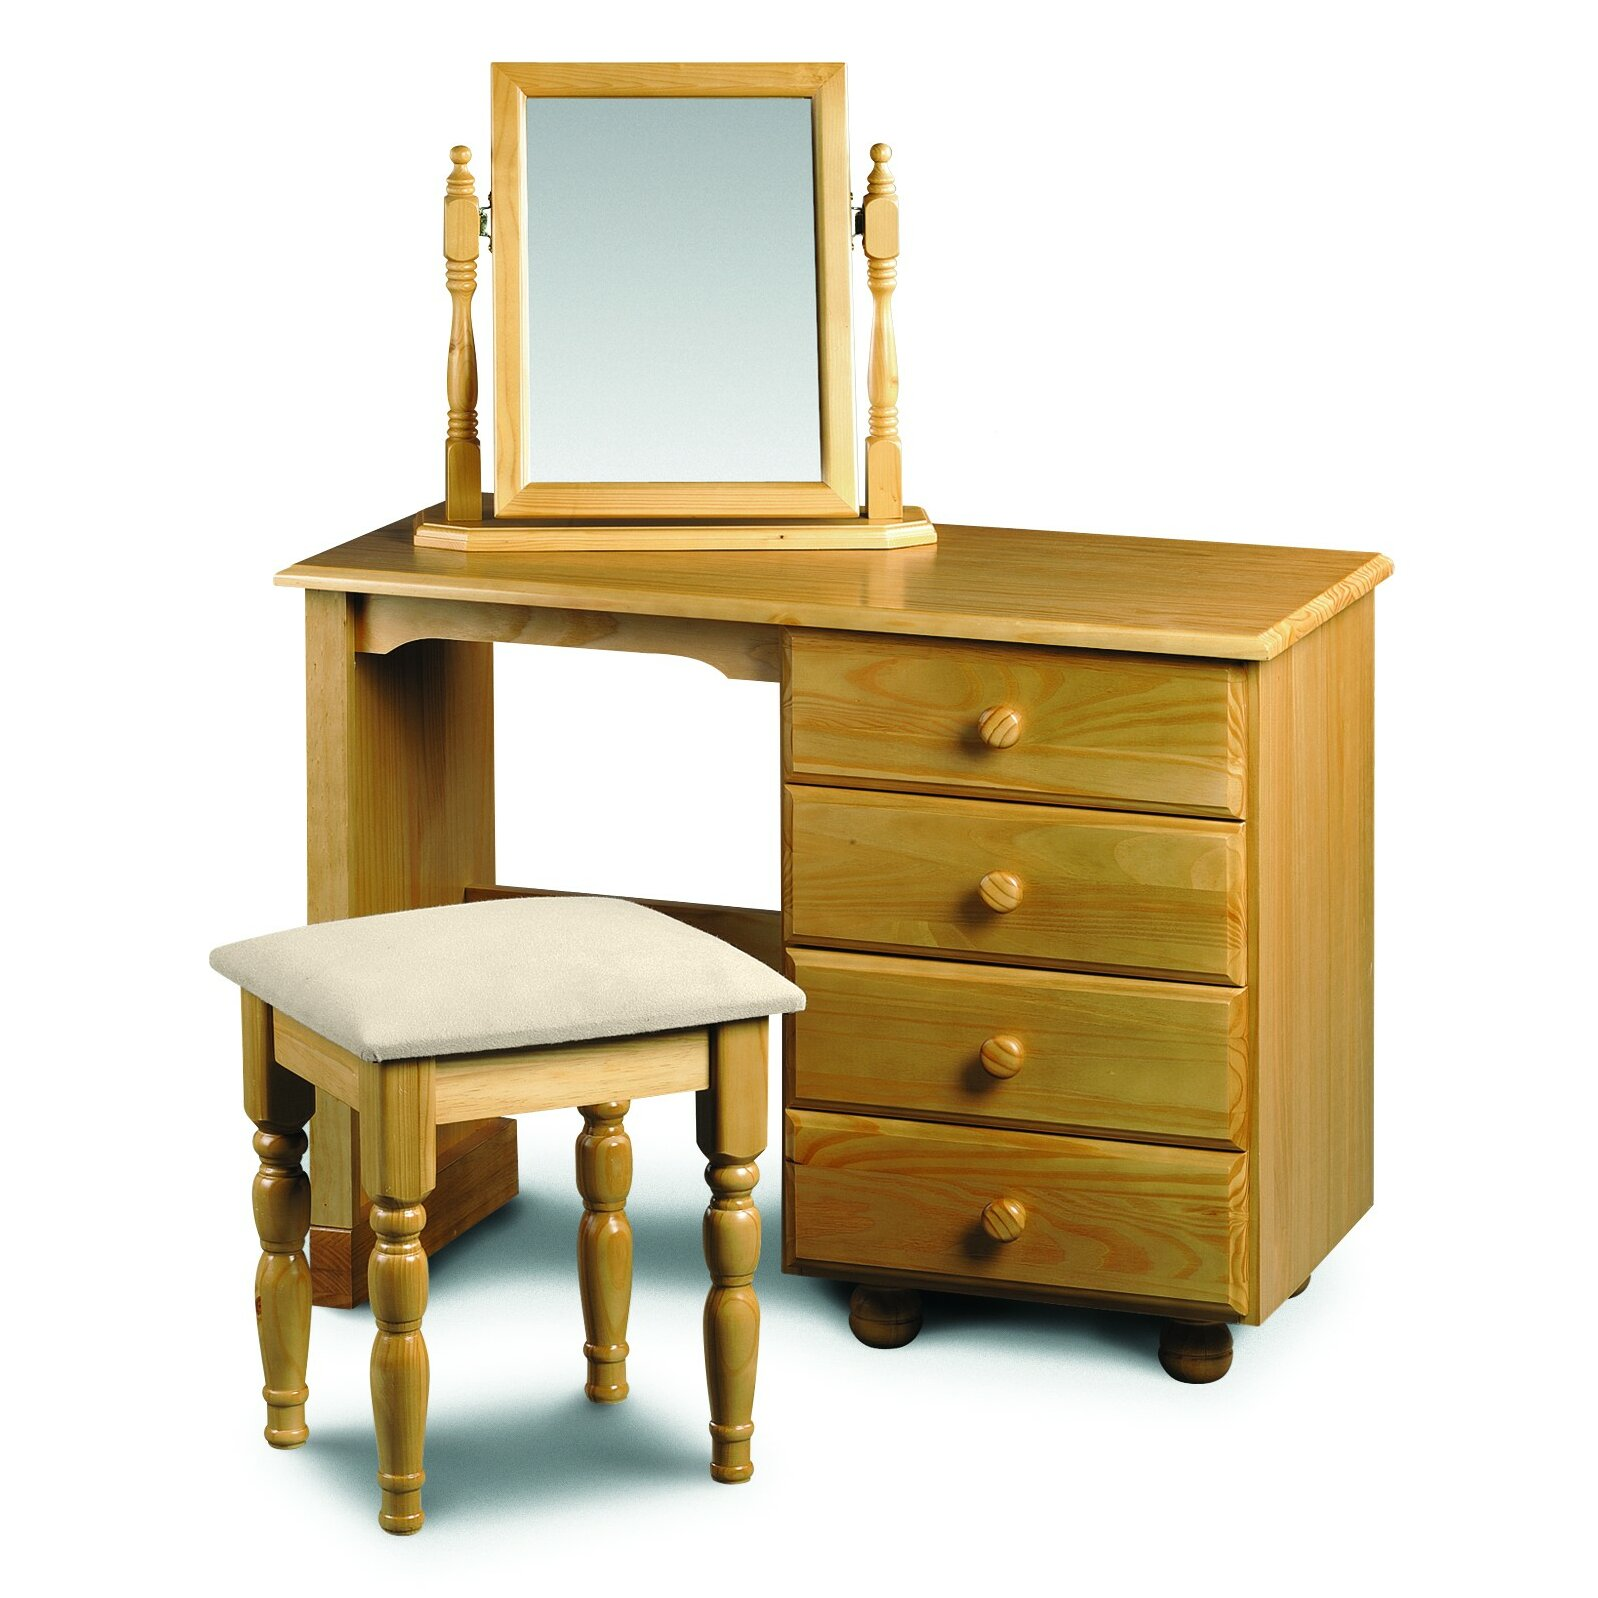 All home woodward 4 drawer single pedestal dressing table for 90cm dressing table